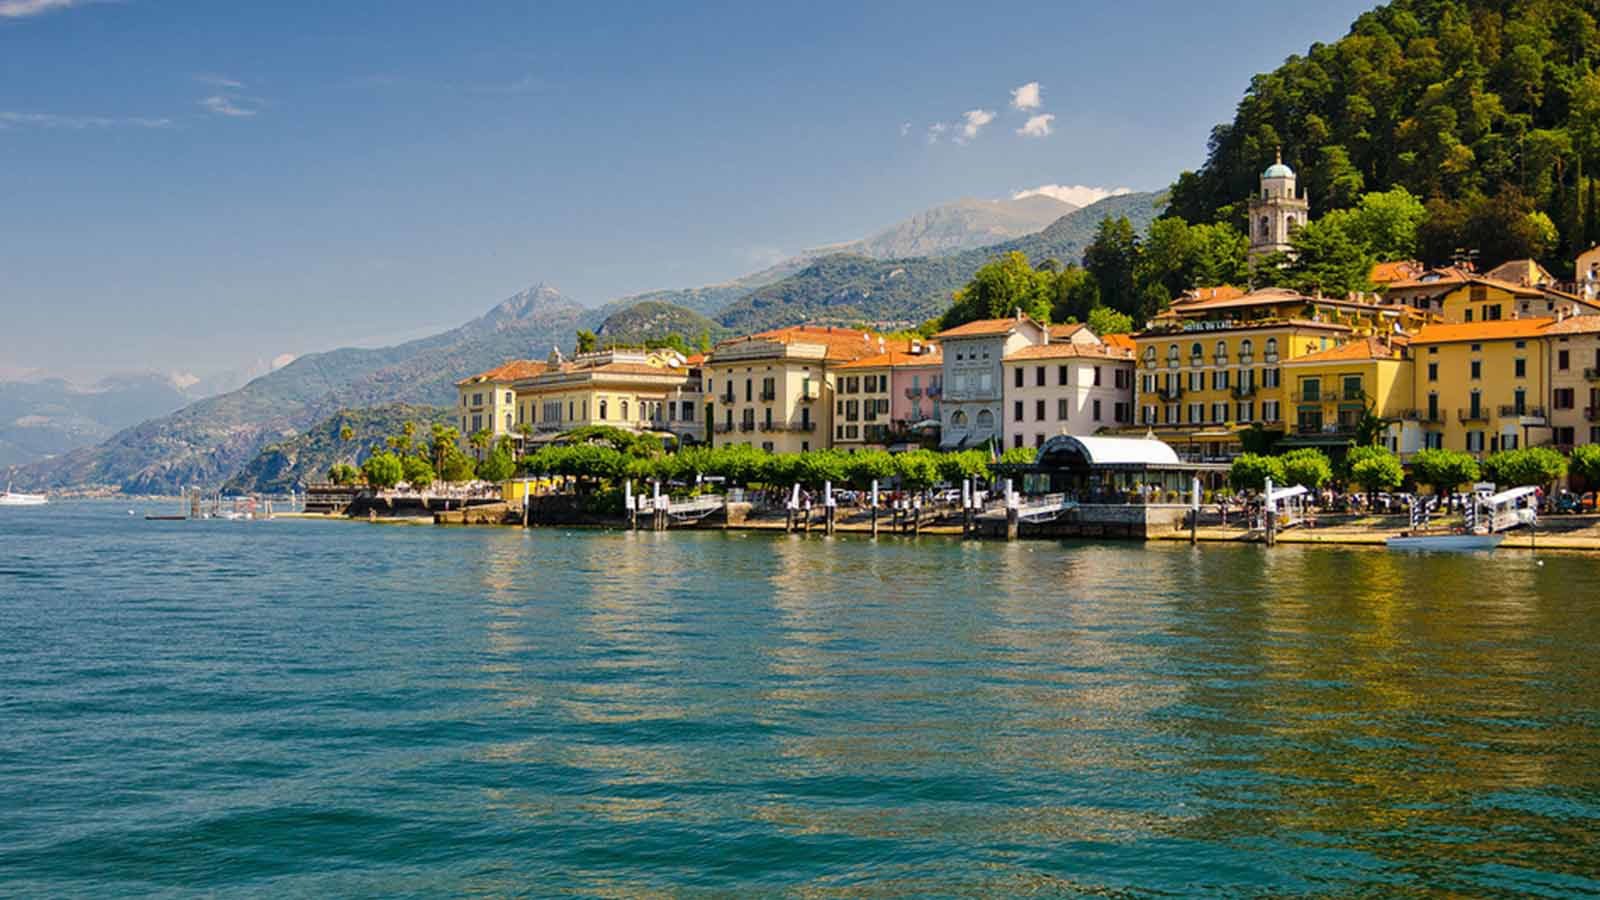 Starwaz in Bellagio - Sheraton Lake Como